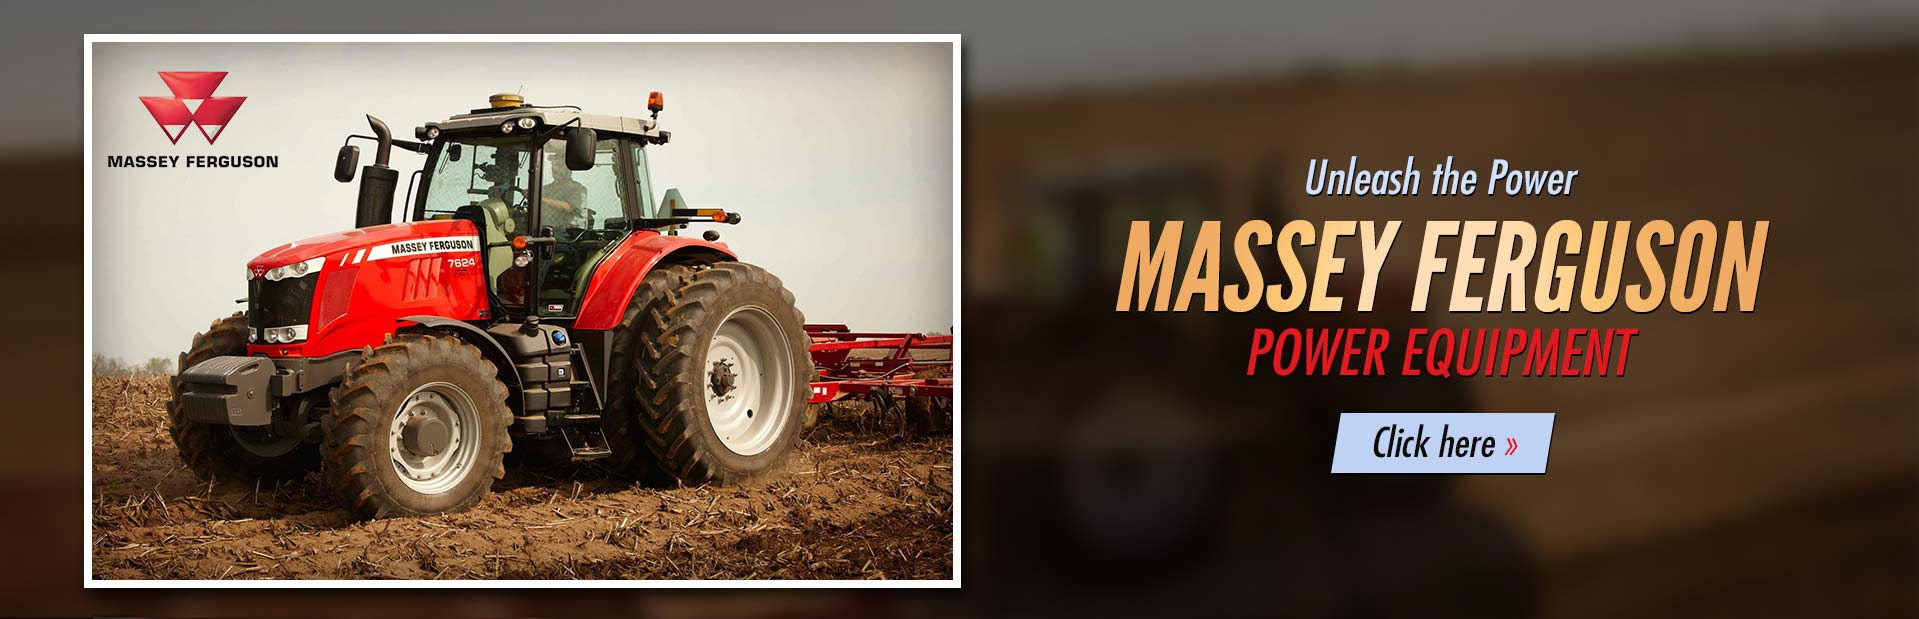 Unleash the power with Massey Ferguson power equipment! Click here to view our selection.